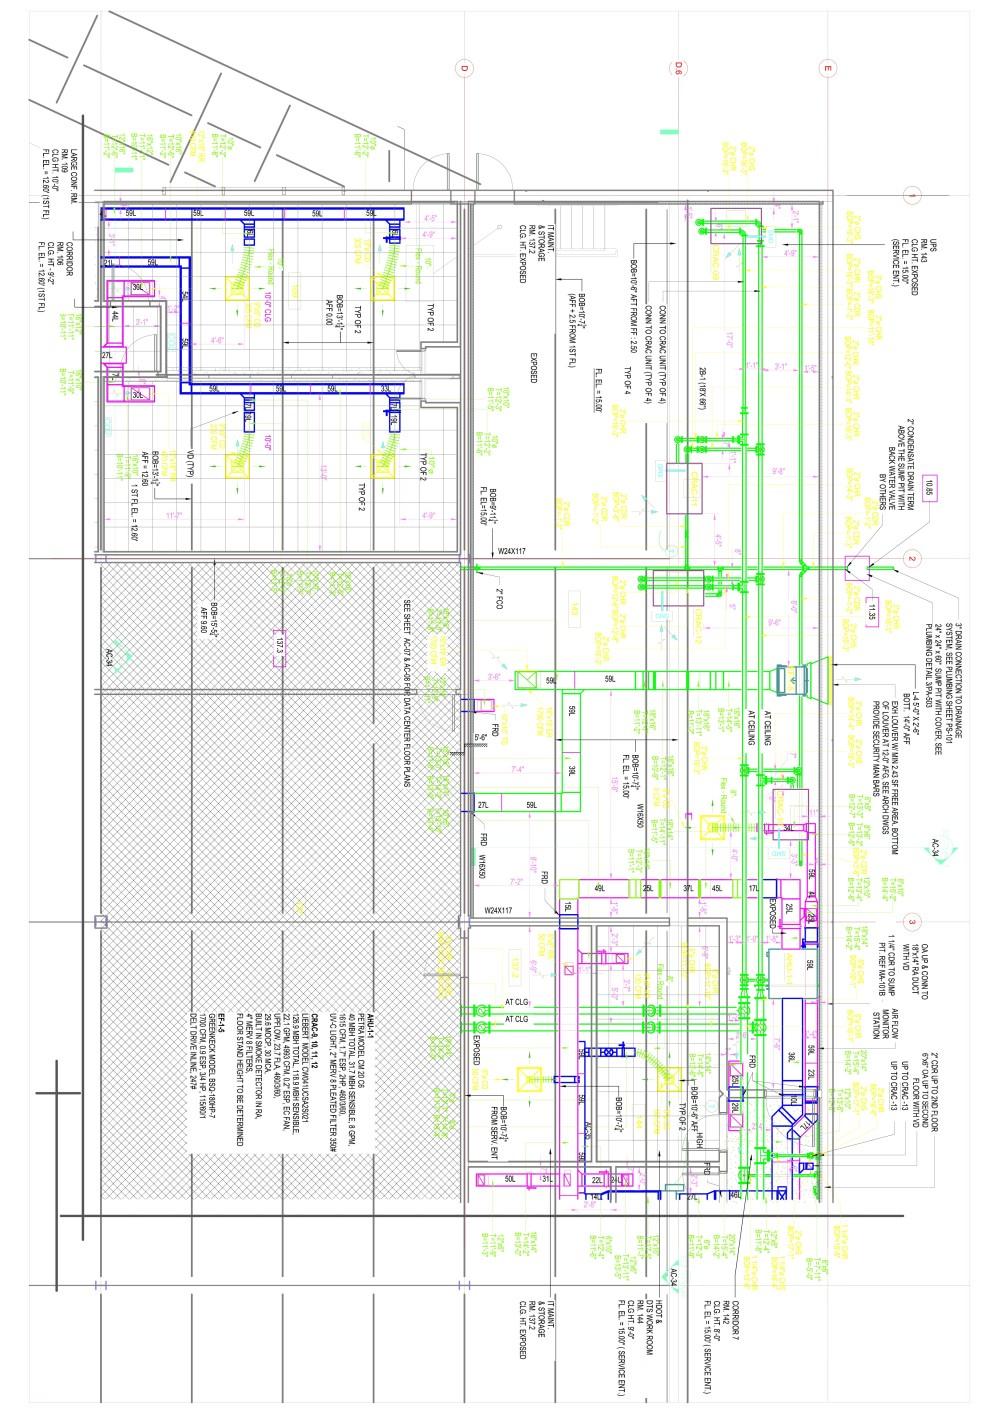 medium resolution of wrg 6251 hvac drawing keyclick here for high resolution